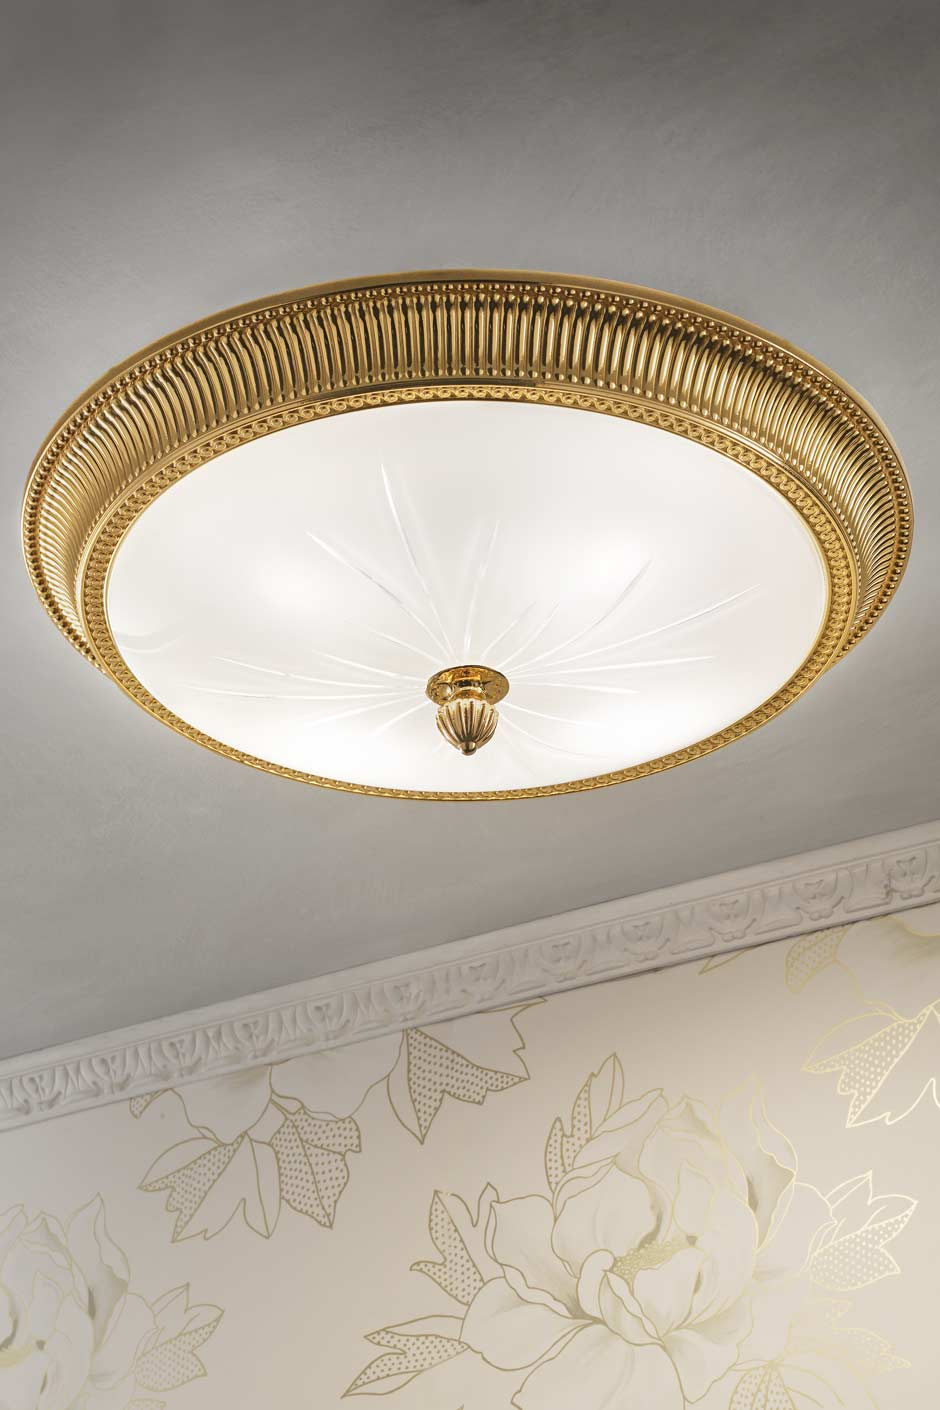 Large round gold-plated bronze ceiling light. Masiero.